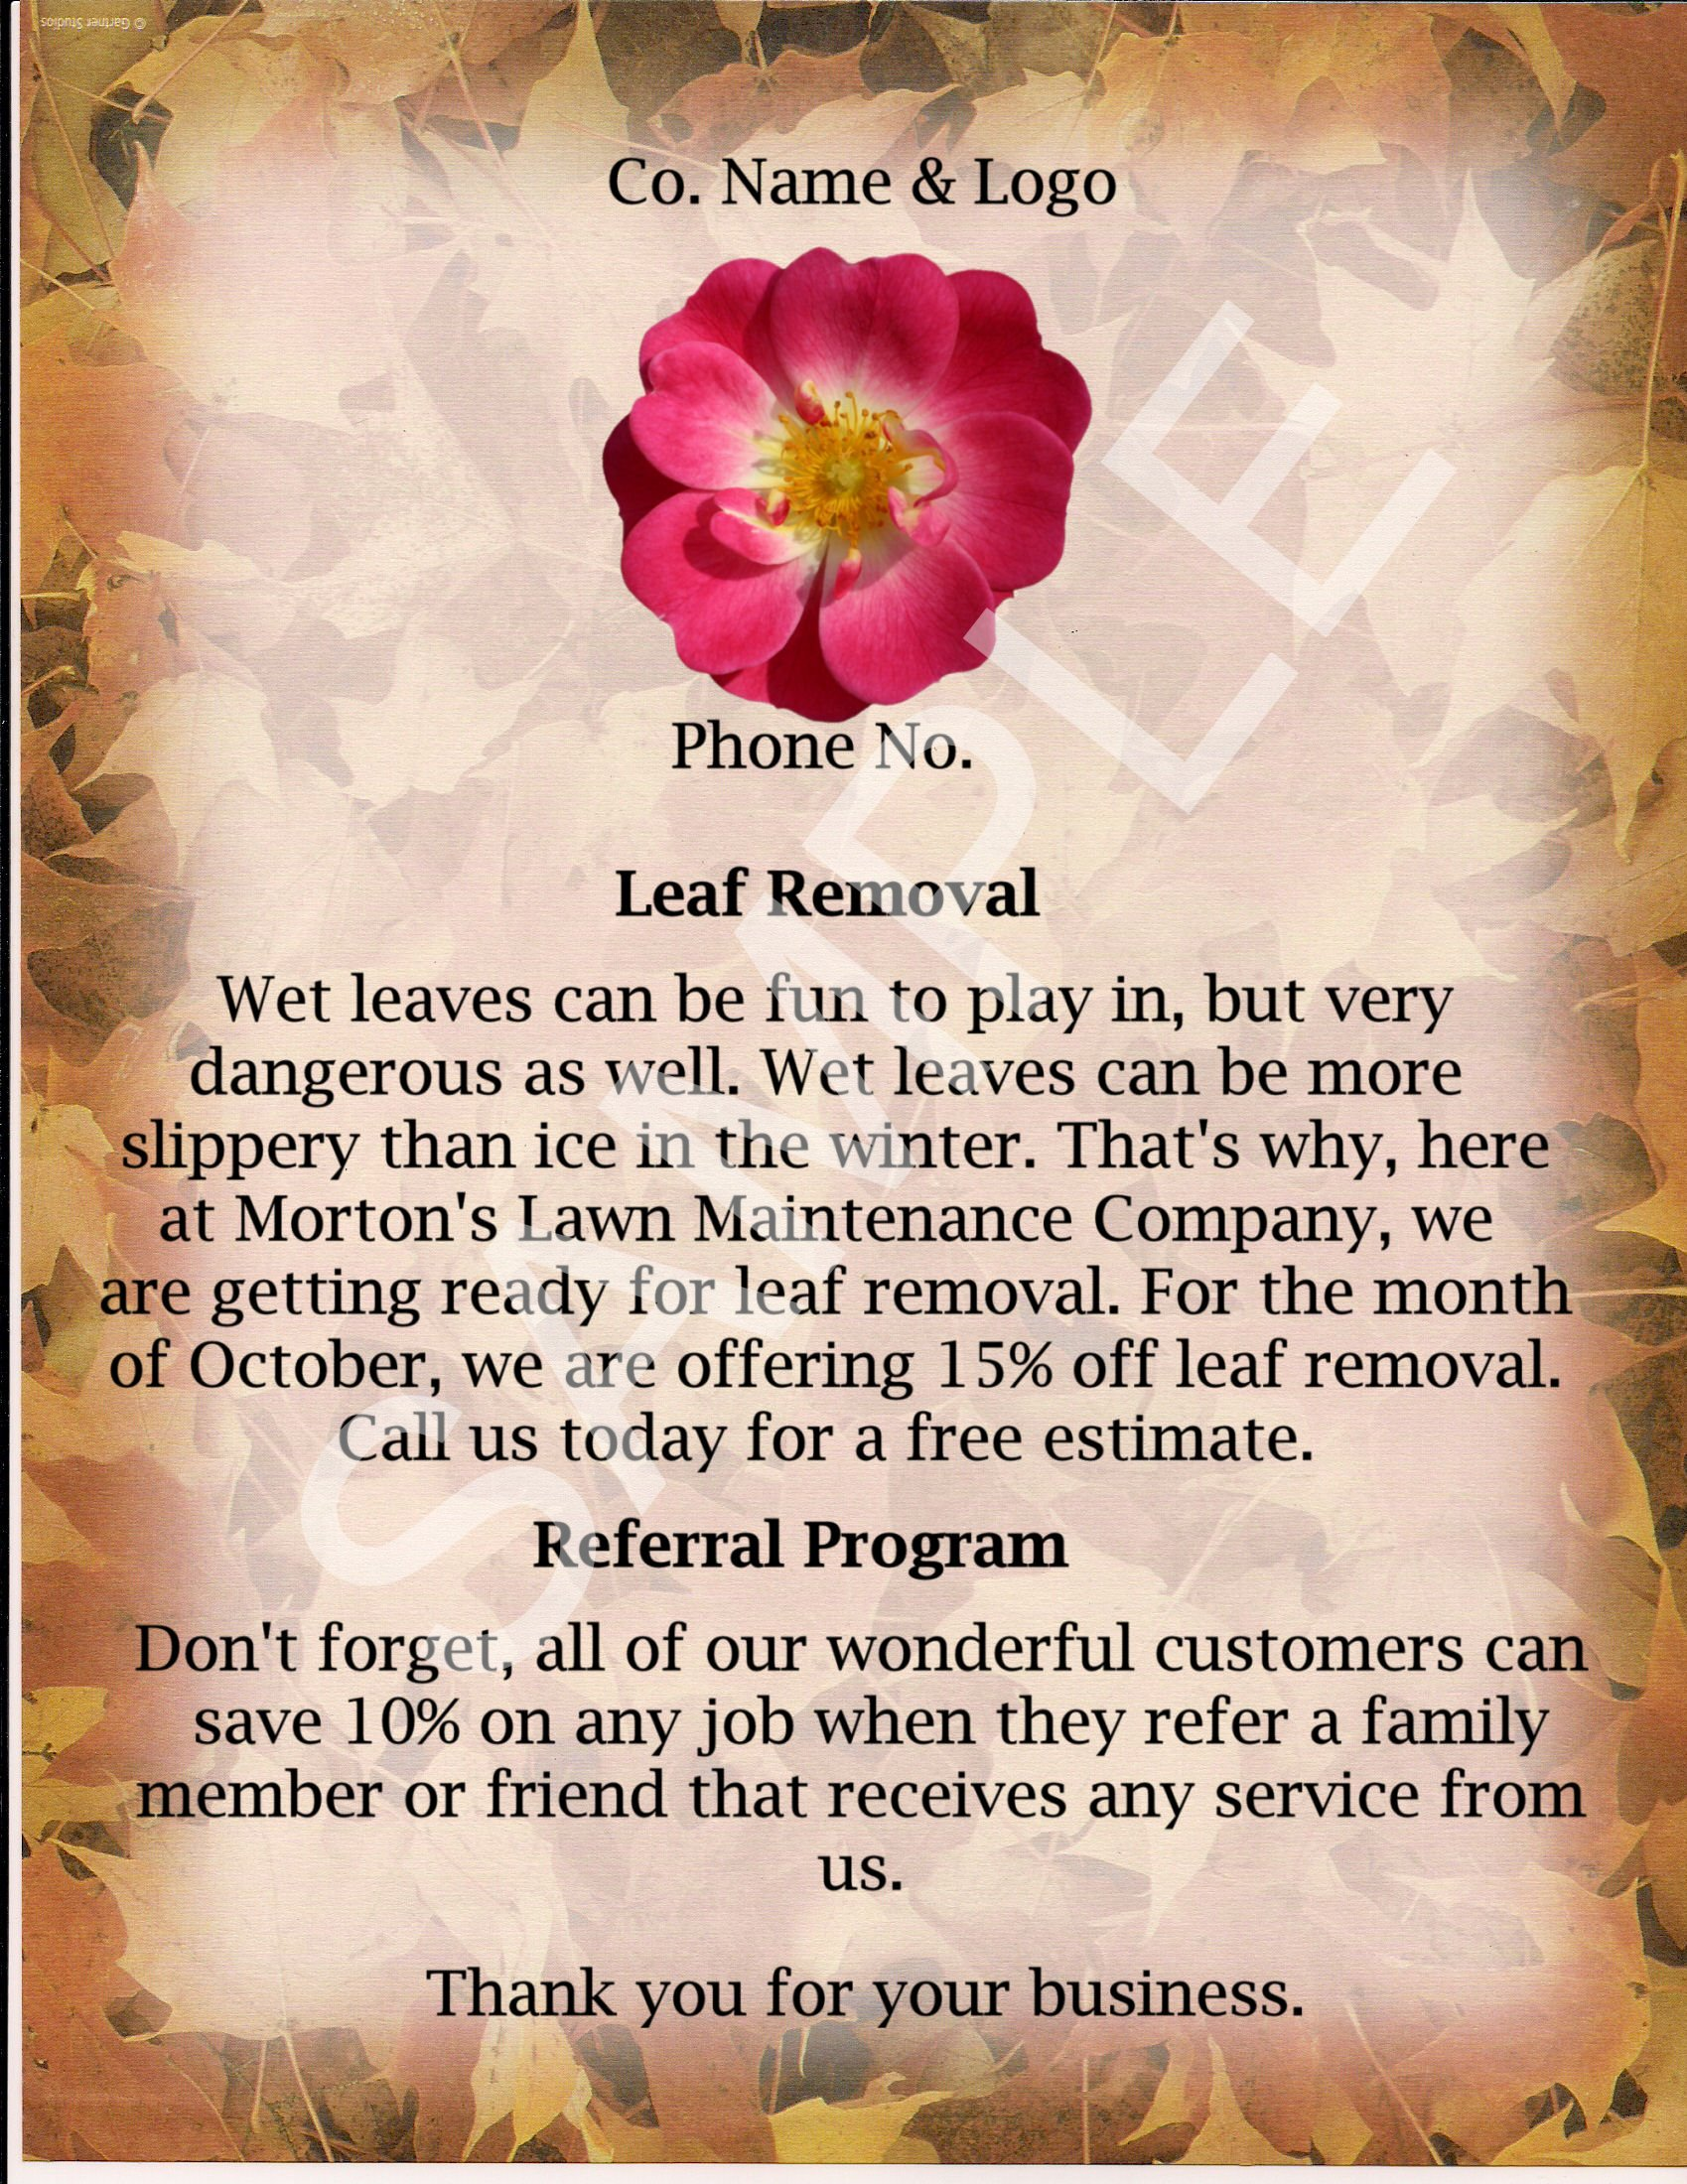 lawn care flyer lawn care business marketing tips gopherhaul blog lawn care flyer